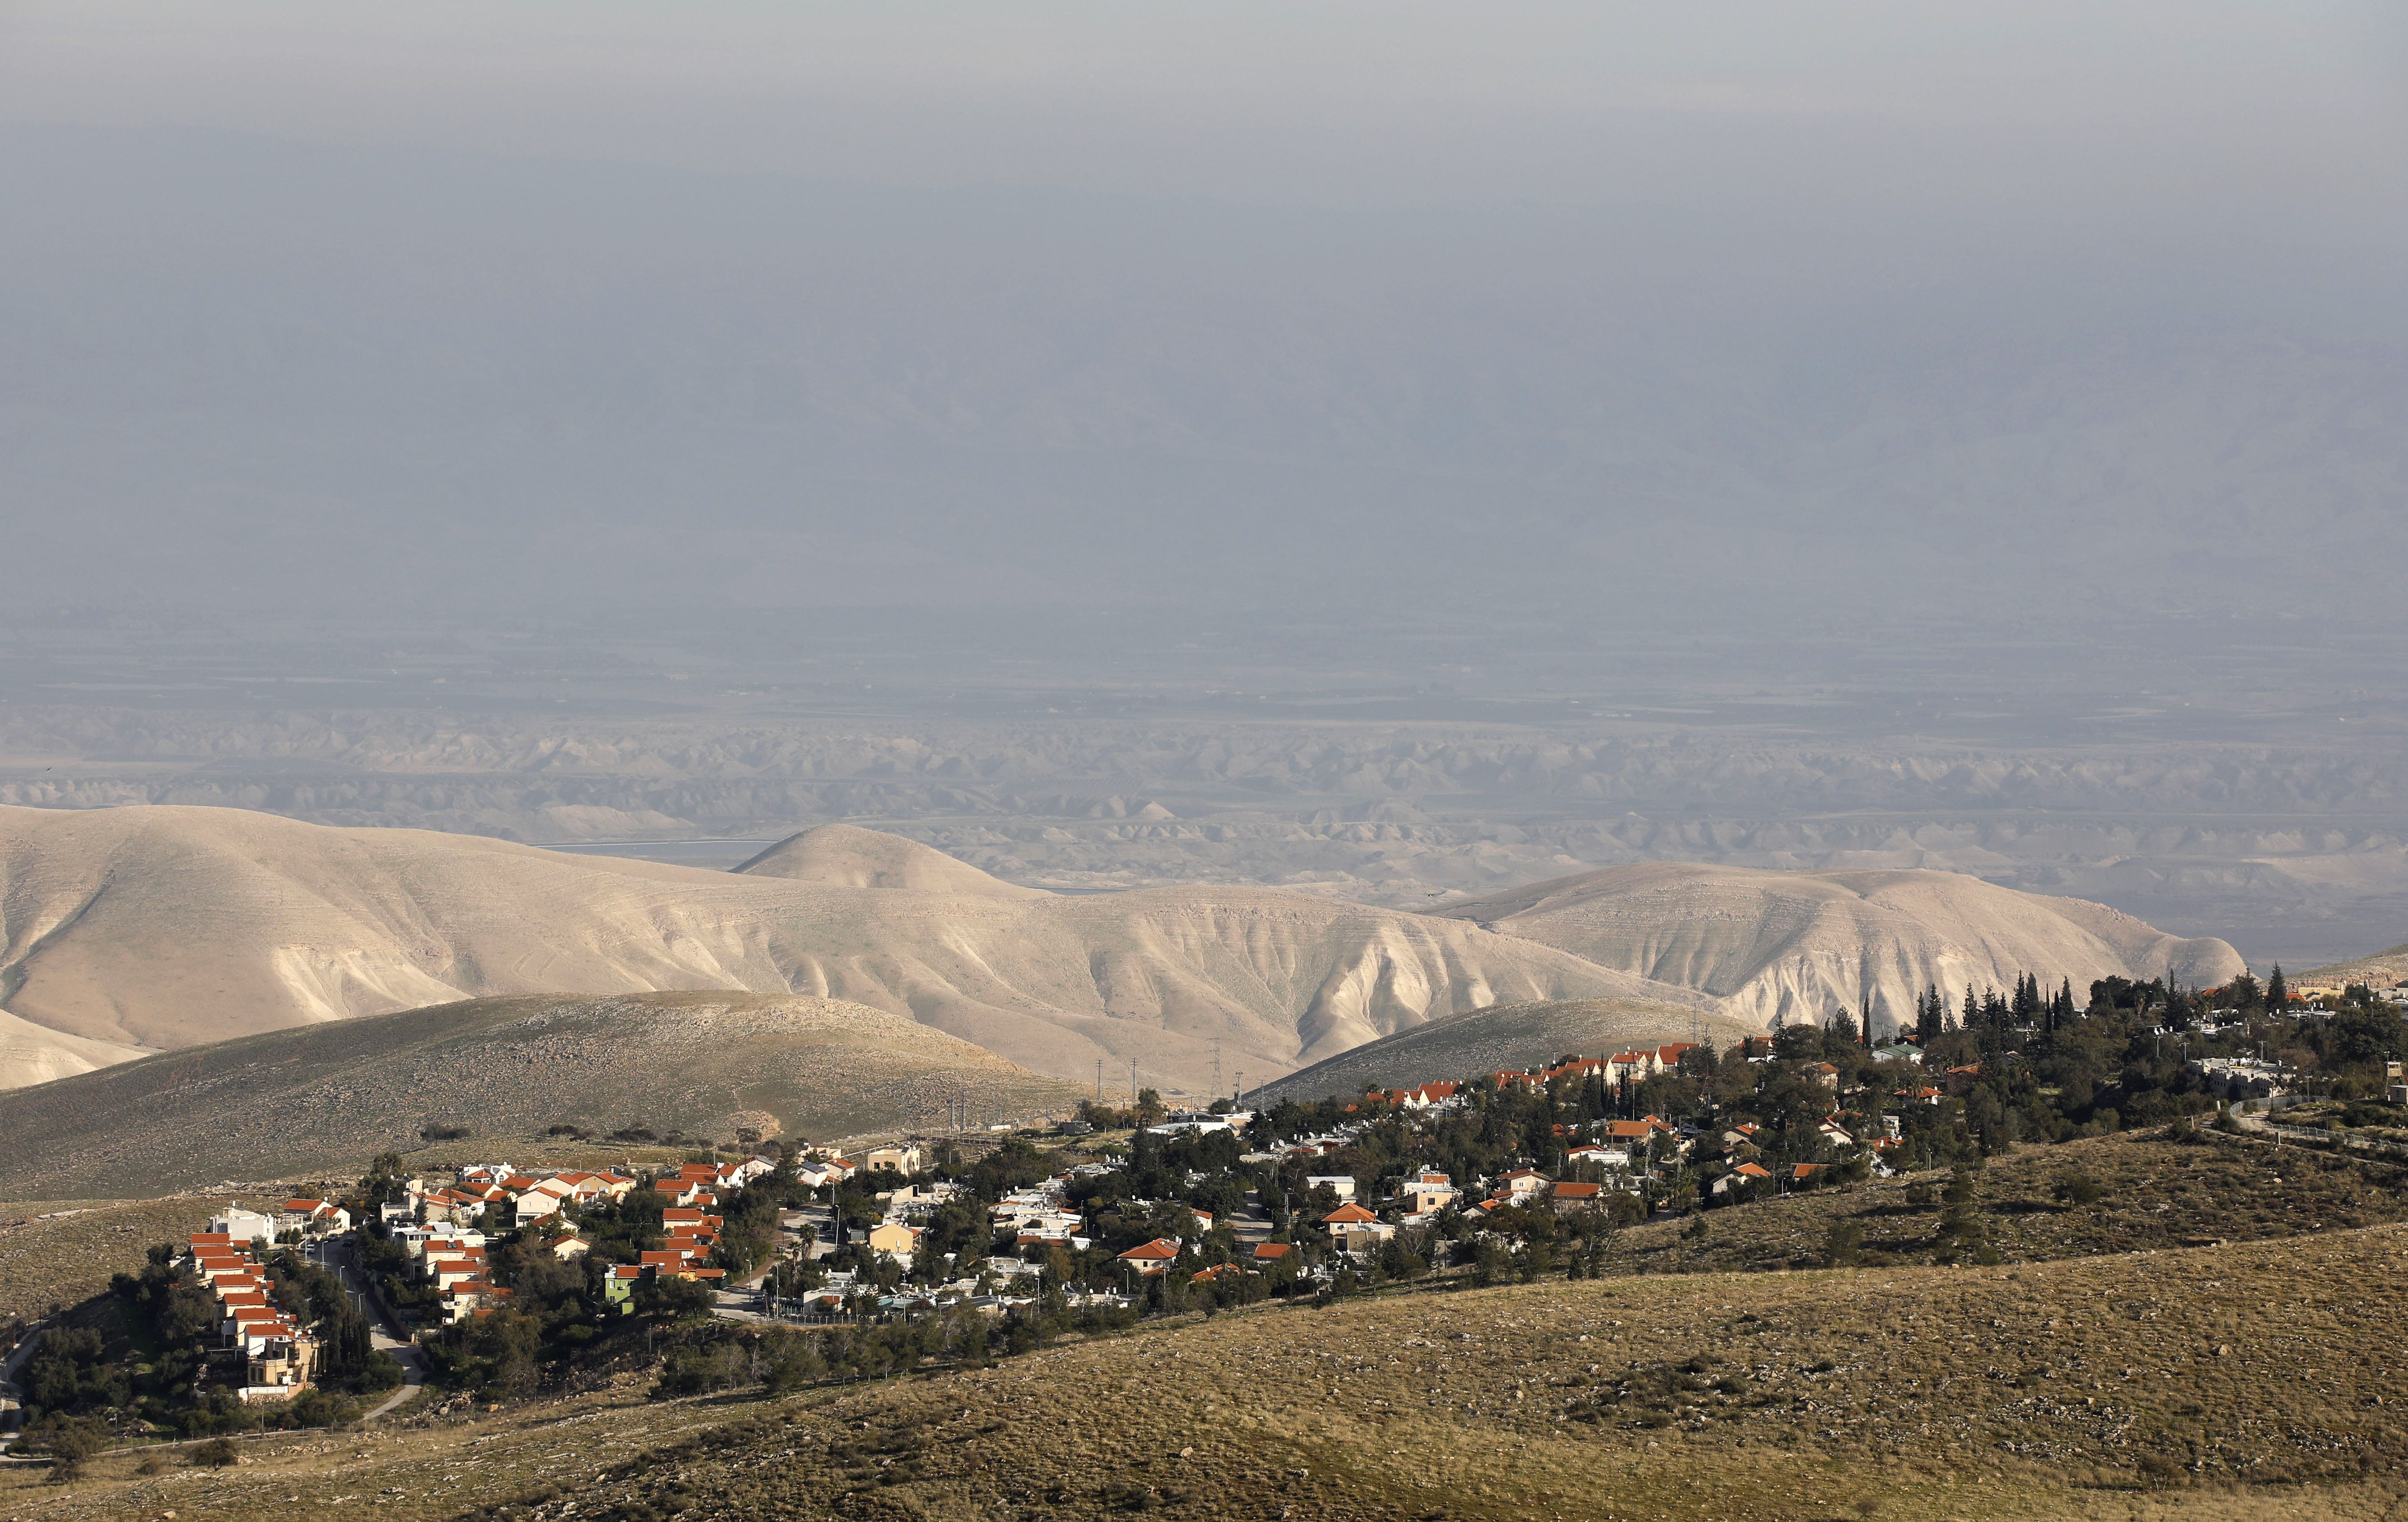 A general view of the Israeli settlement of Maale Efrayim in the Jordan Valley, in the occupied West Bank, on Monday.